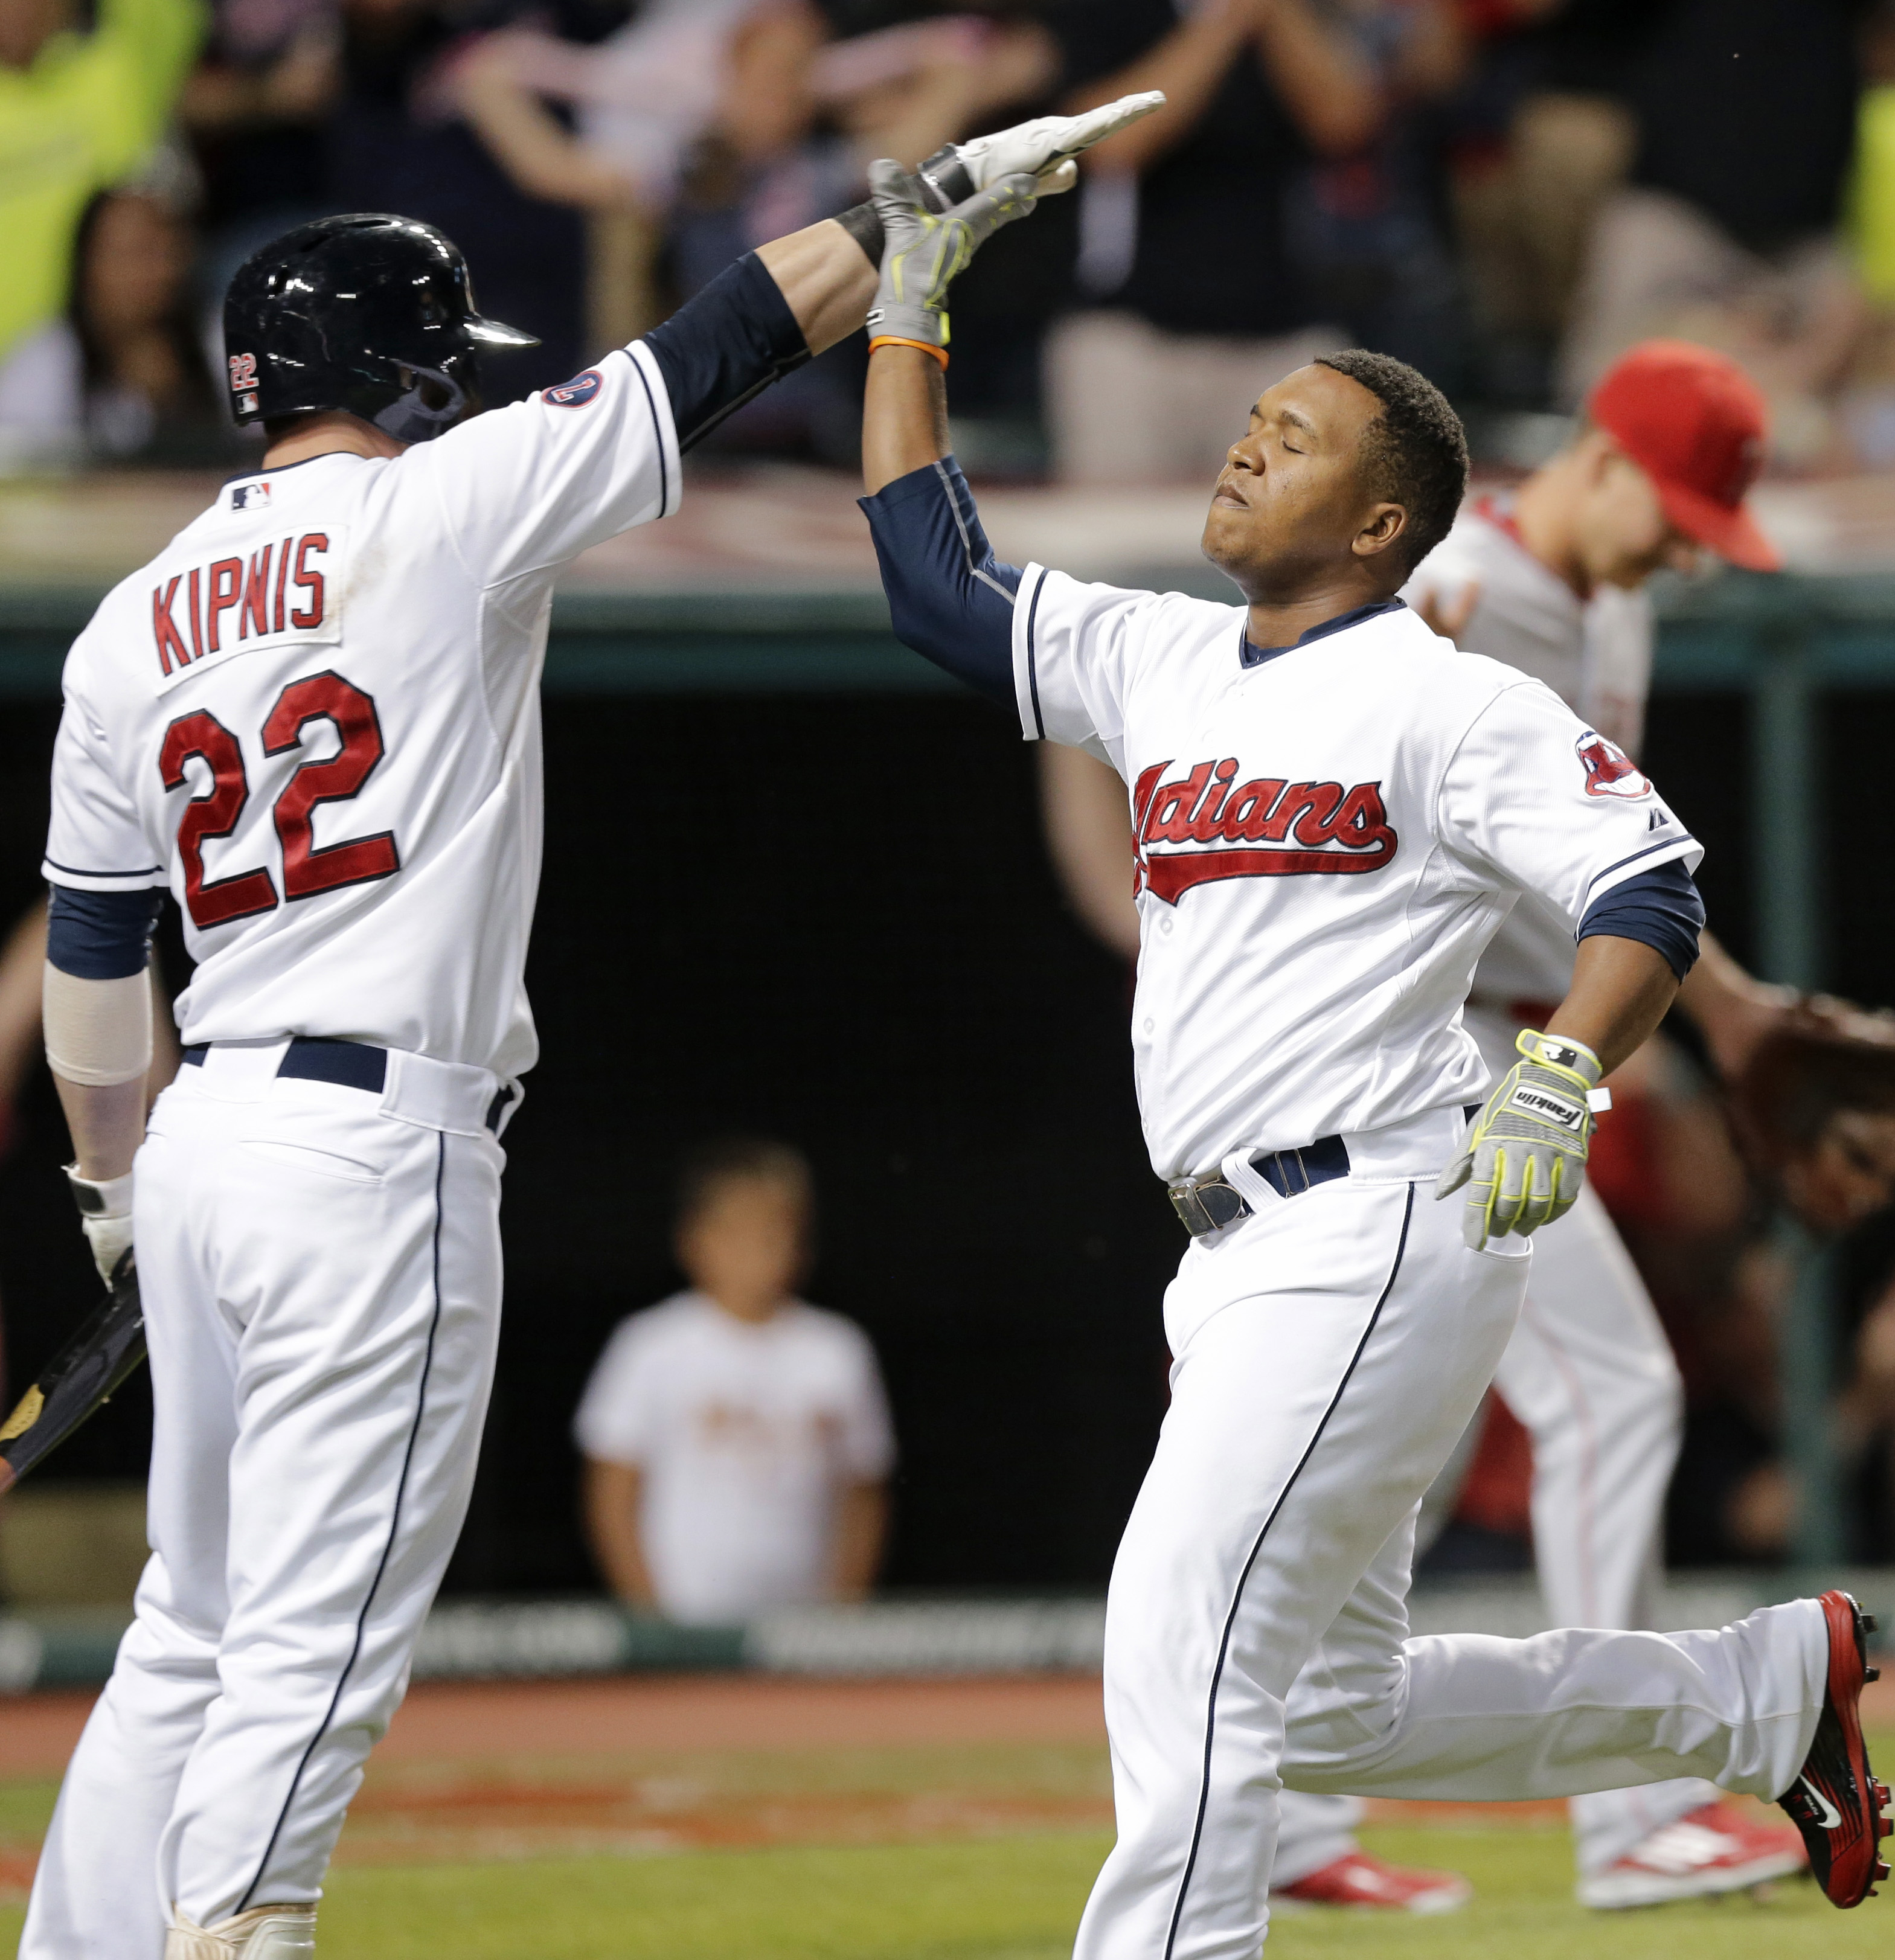 Cleveland Indians' Jose Ramirez, right, is congratulated by Jason Kipnis after Ramirez scored on a double by Abraham Almonte during the seventh inning of a baseball game against the Los Angeles Angels, Friday, Aug. 28, 2015, in Cleveland. (AP Photo/Tony D